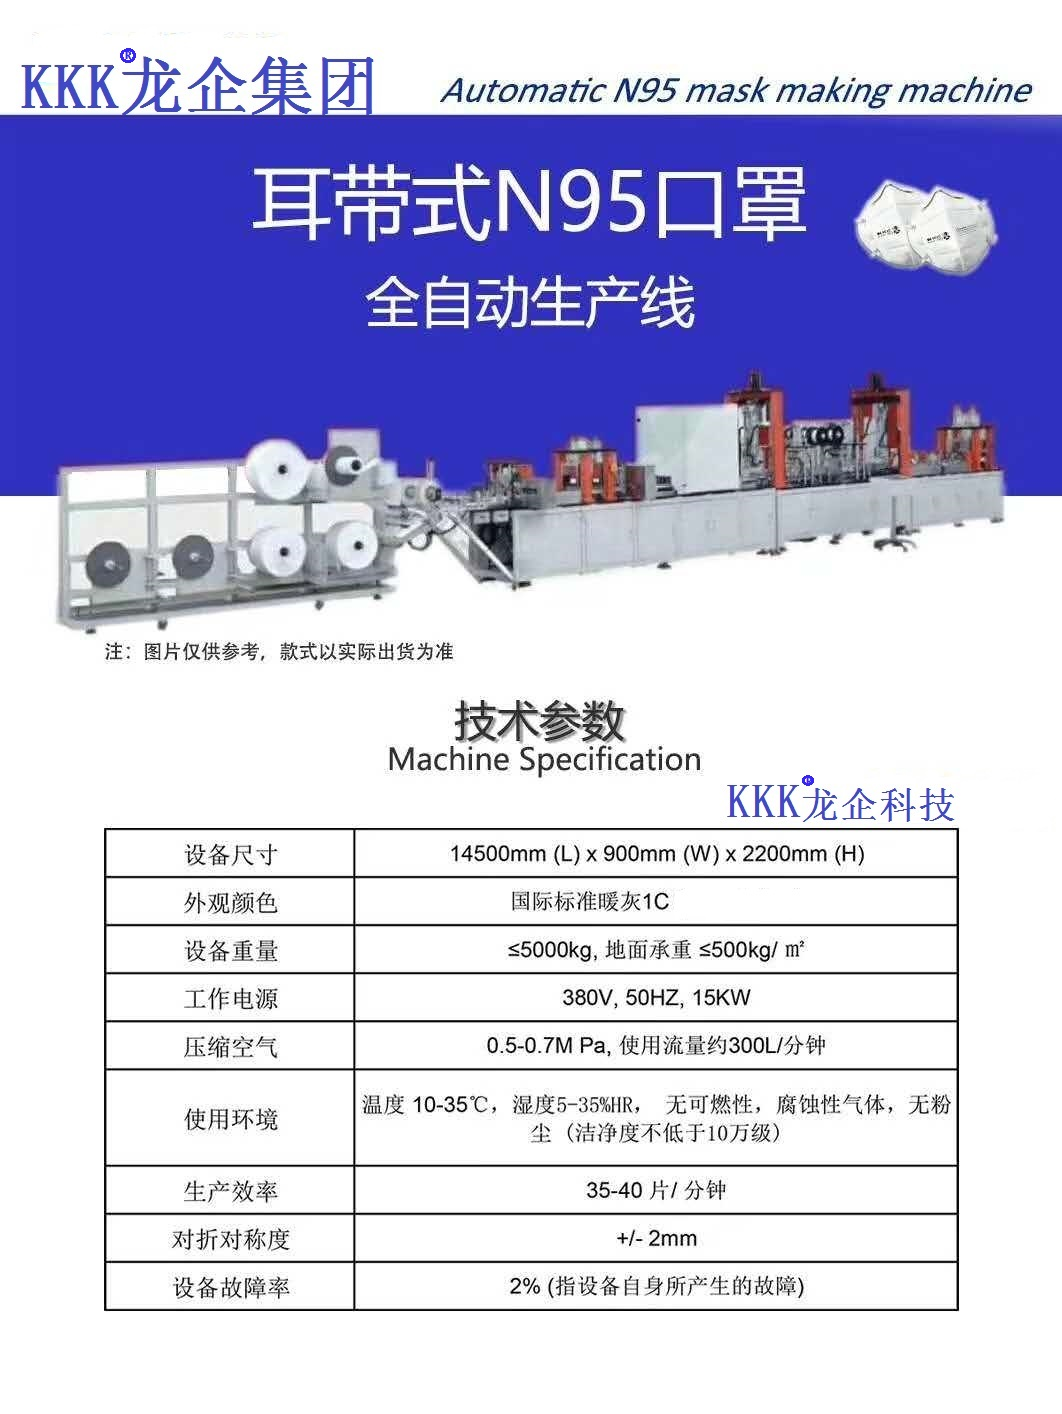 YWK-112kz Automatic N95 mask making machine